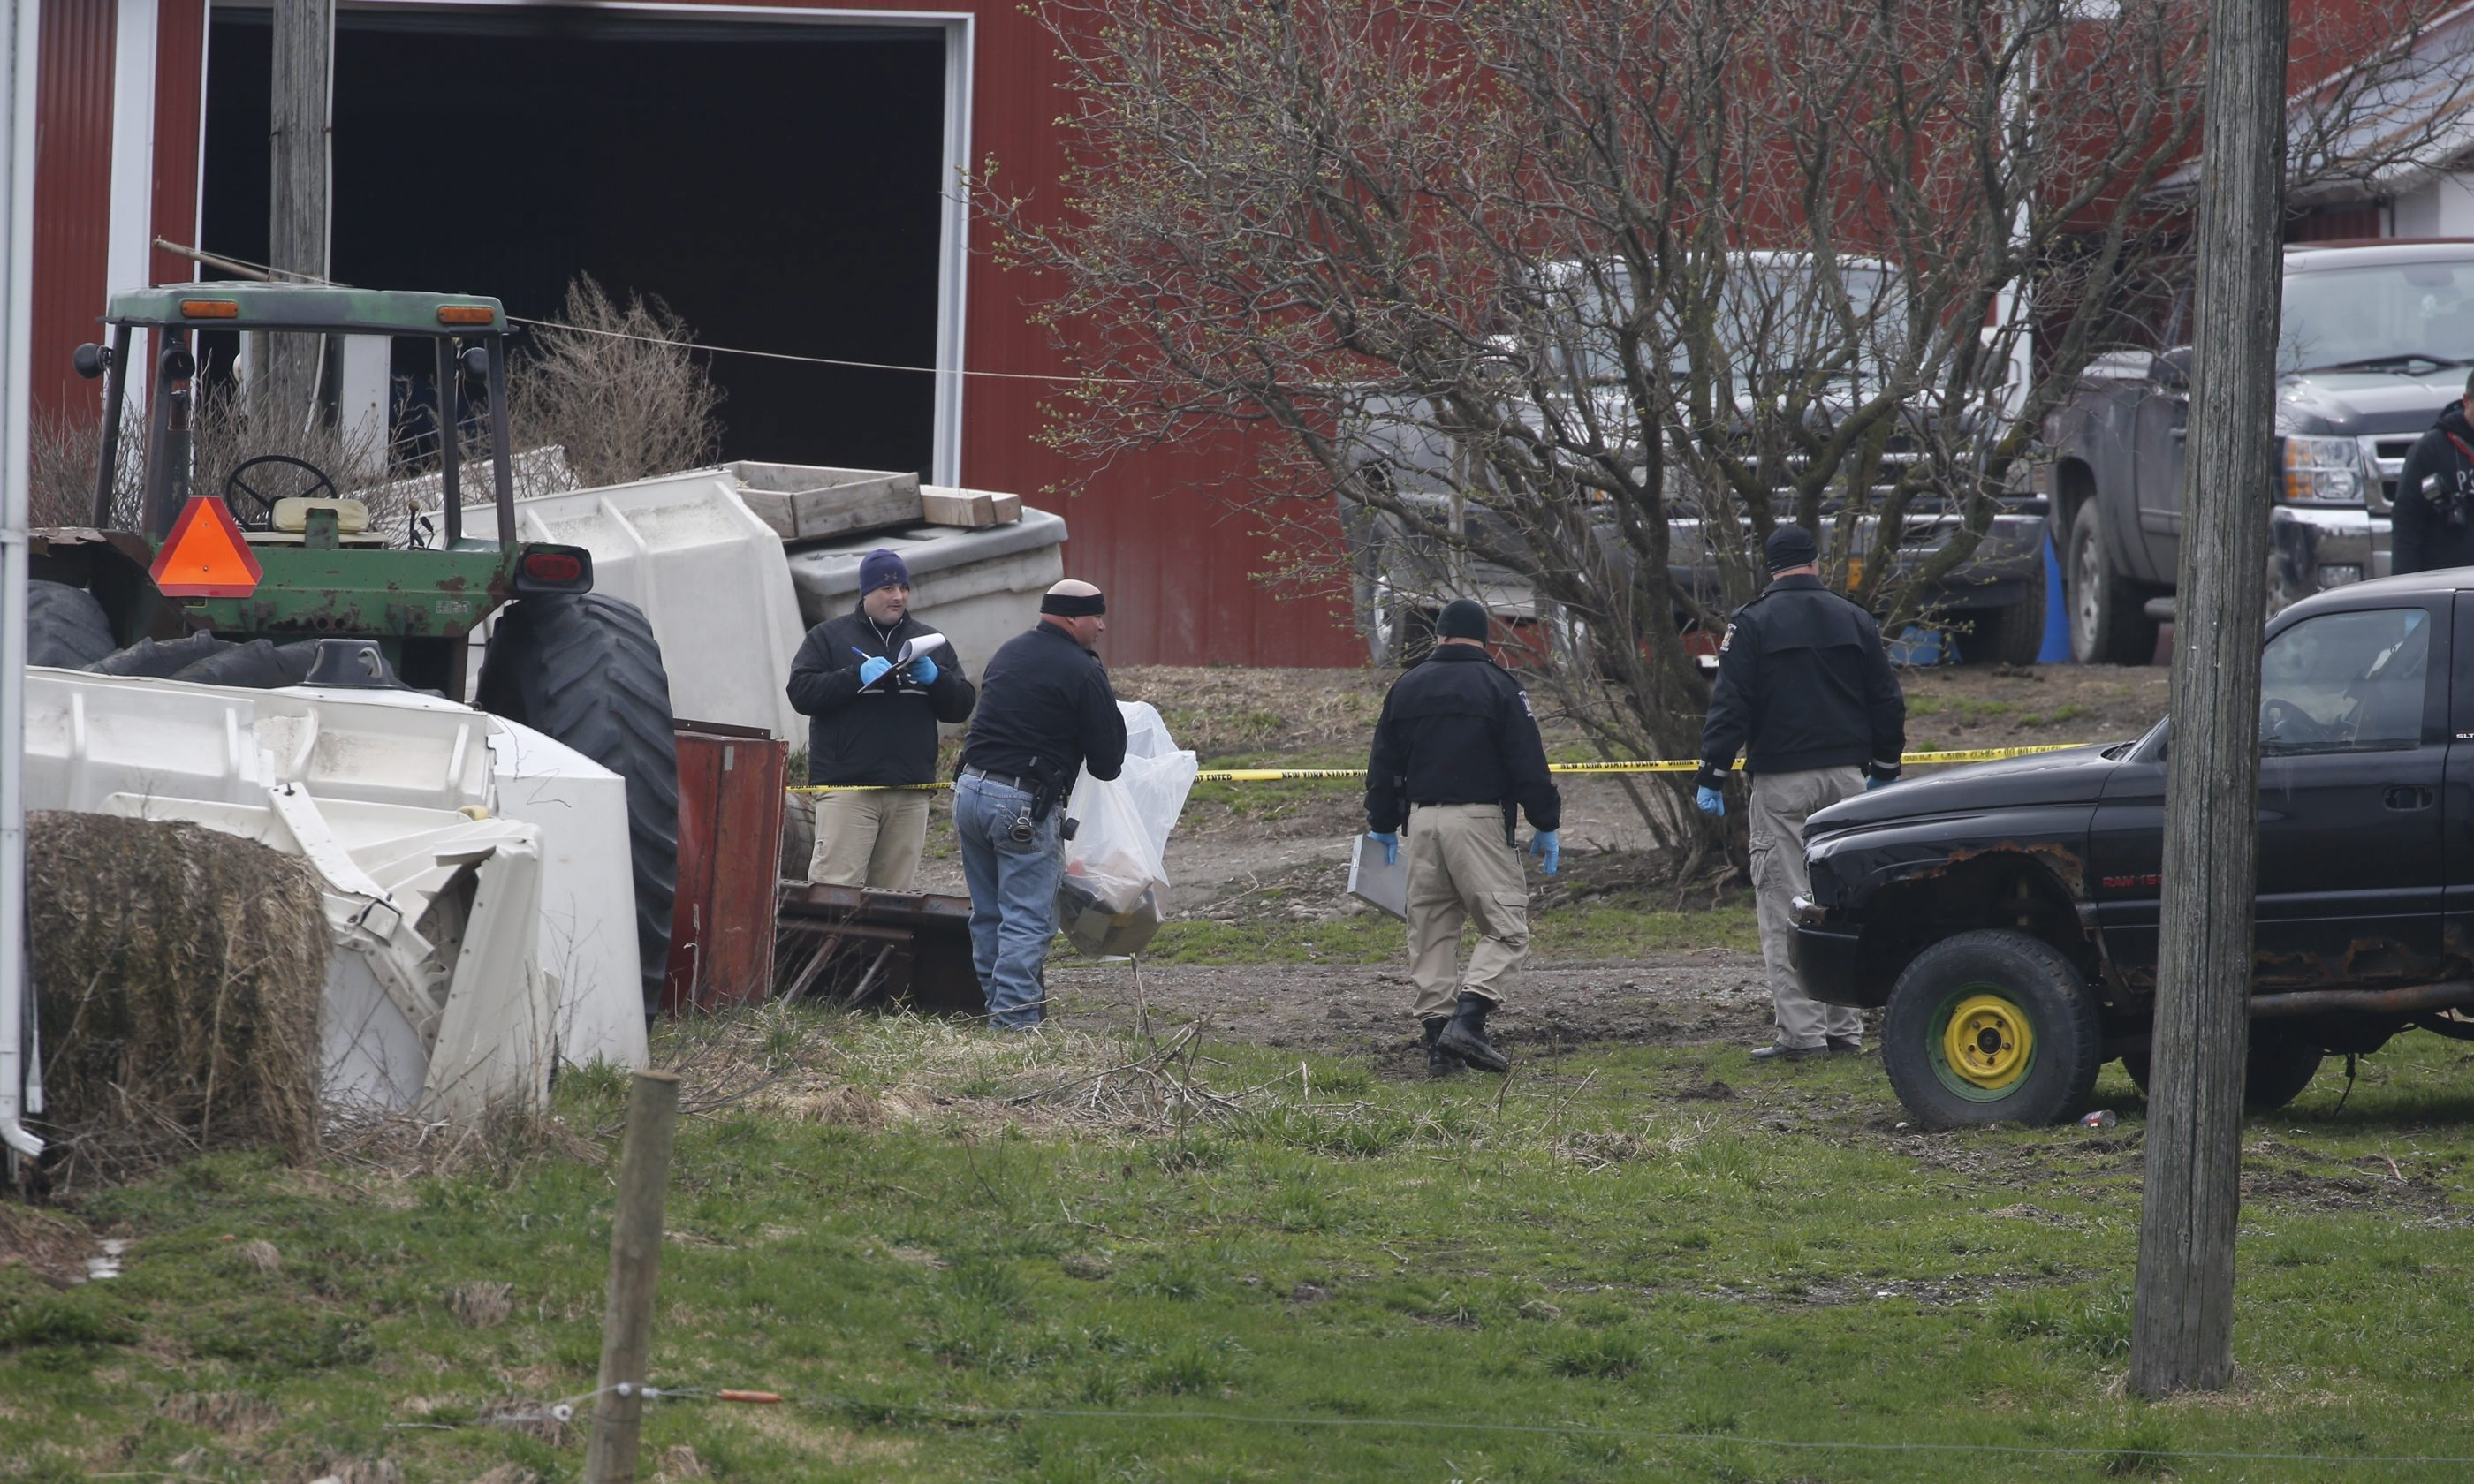 The scene in April 2015 after Douglas Mess' body was found in a manure pile. (Buffalo News file photo)